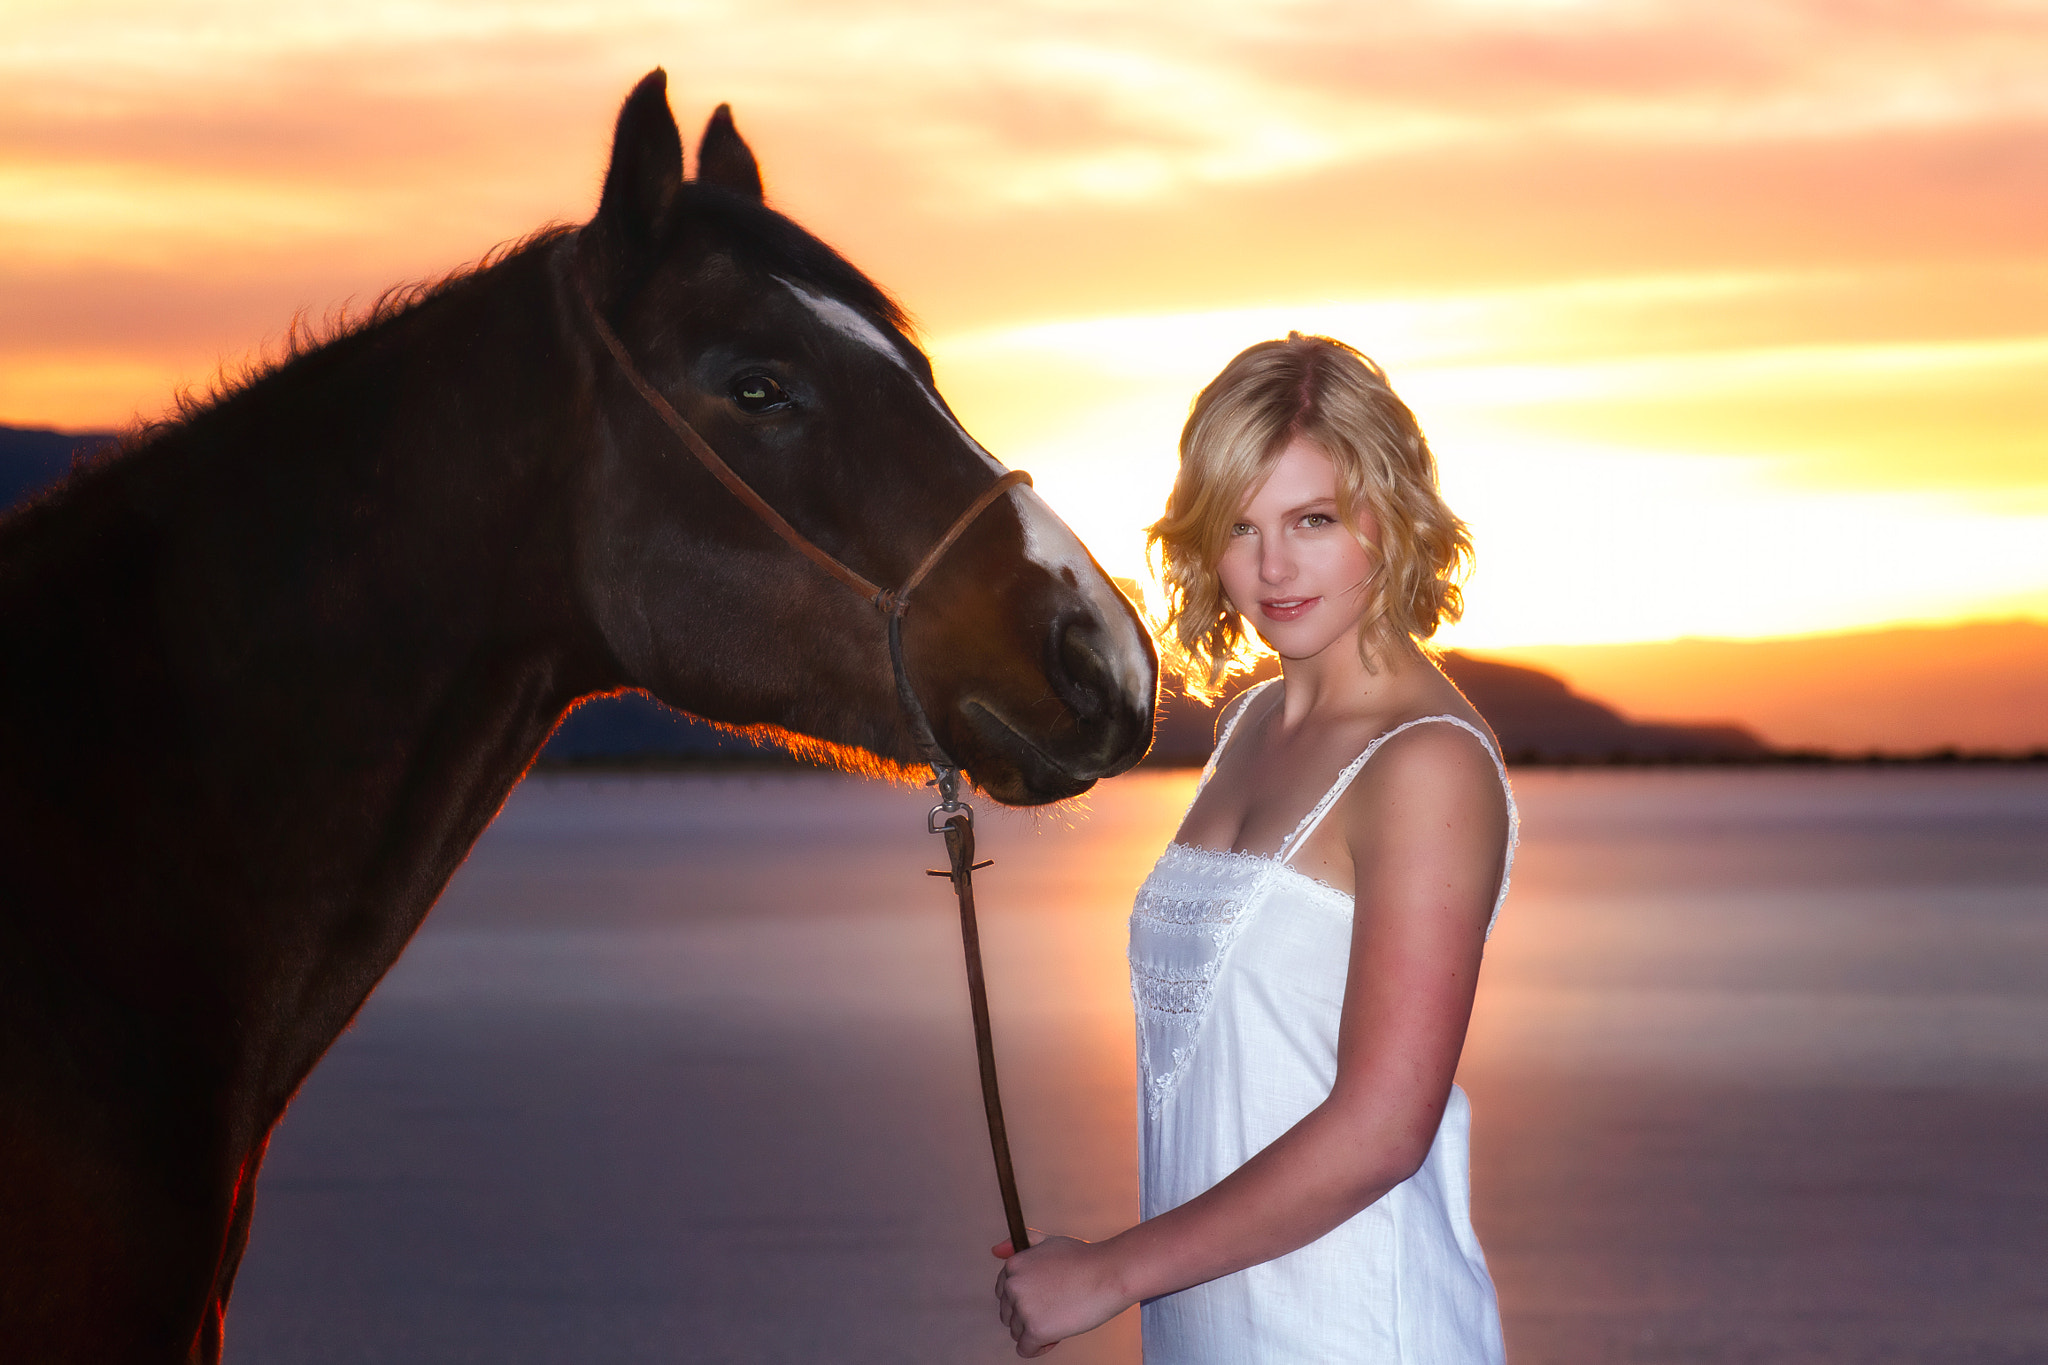 Photograph a girl and a horse by Scott Stringham on 500px